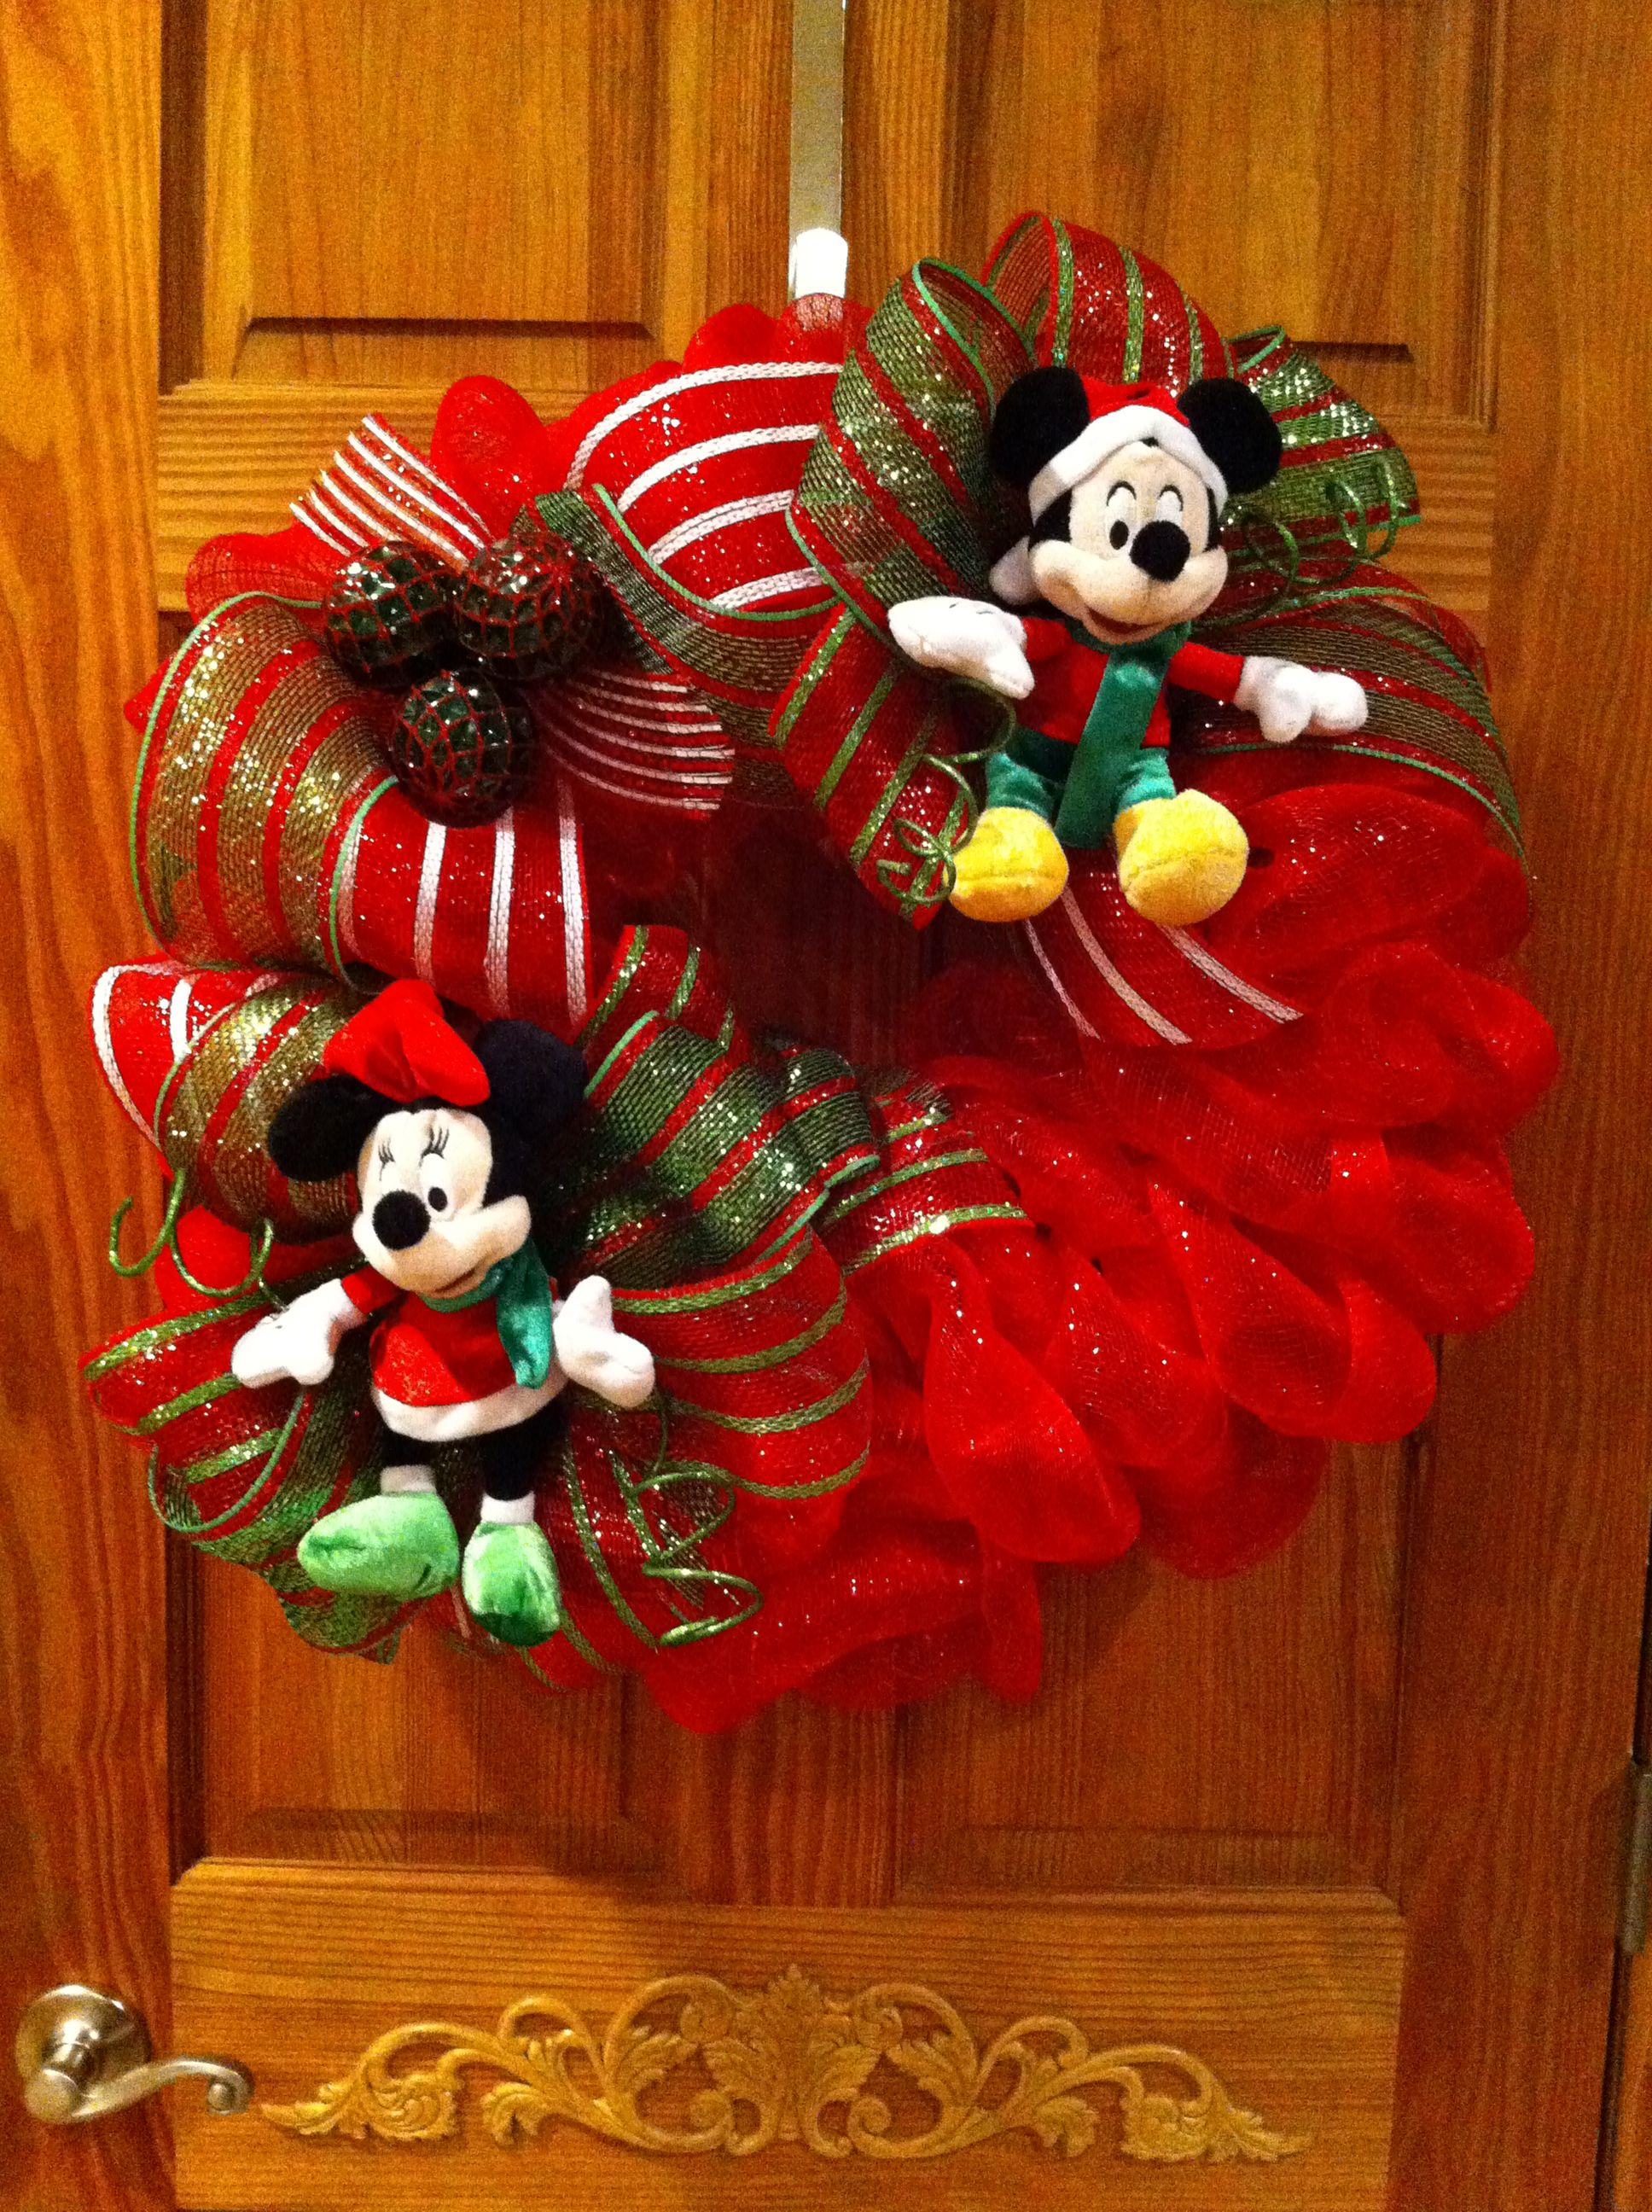 Christmas Disney Mickey & Minnie Mouse Wreath | Wreaths ...